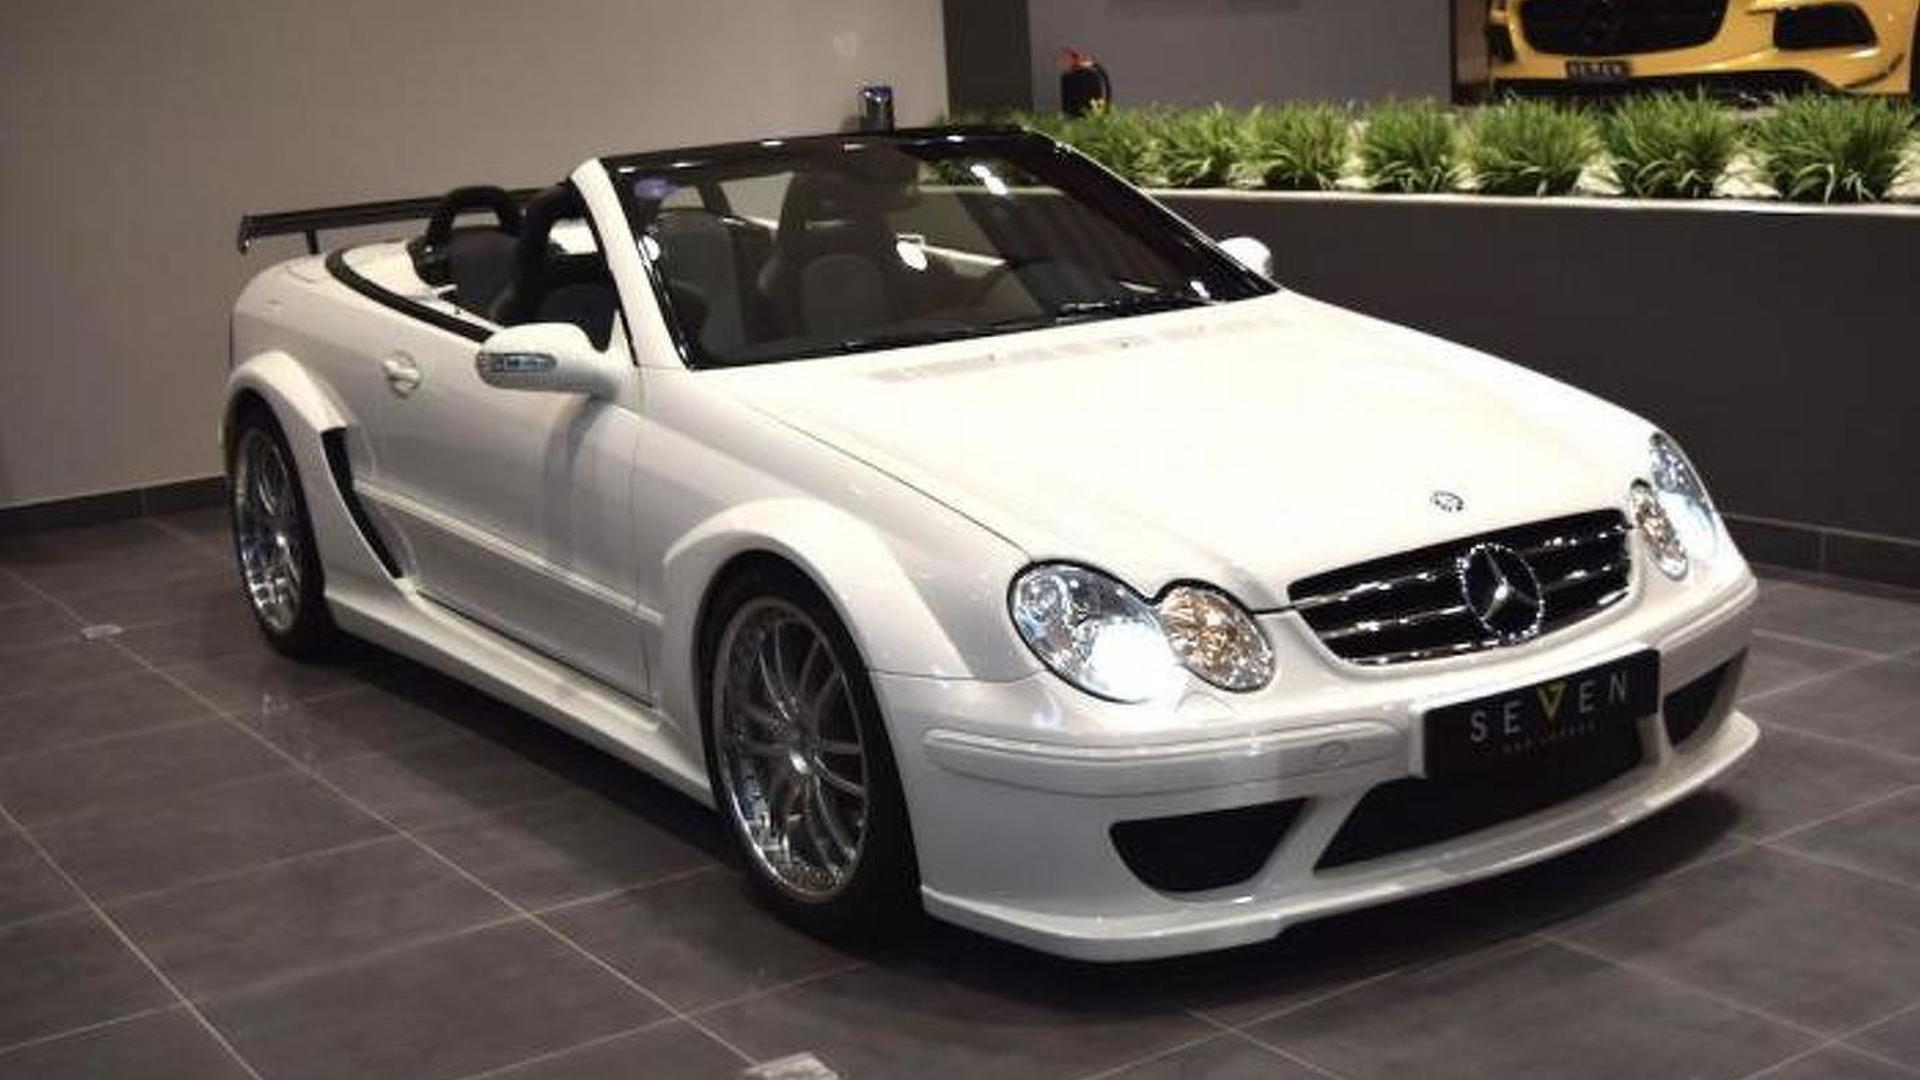 Rare mercedes benz clk dtm amg cabriolet for sale in saudi for Mercedes benz cabriolet for sale